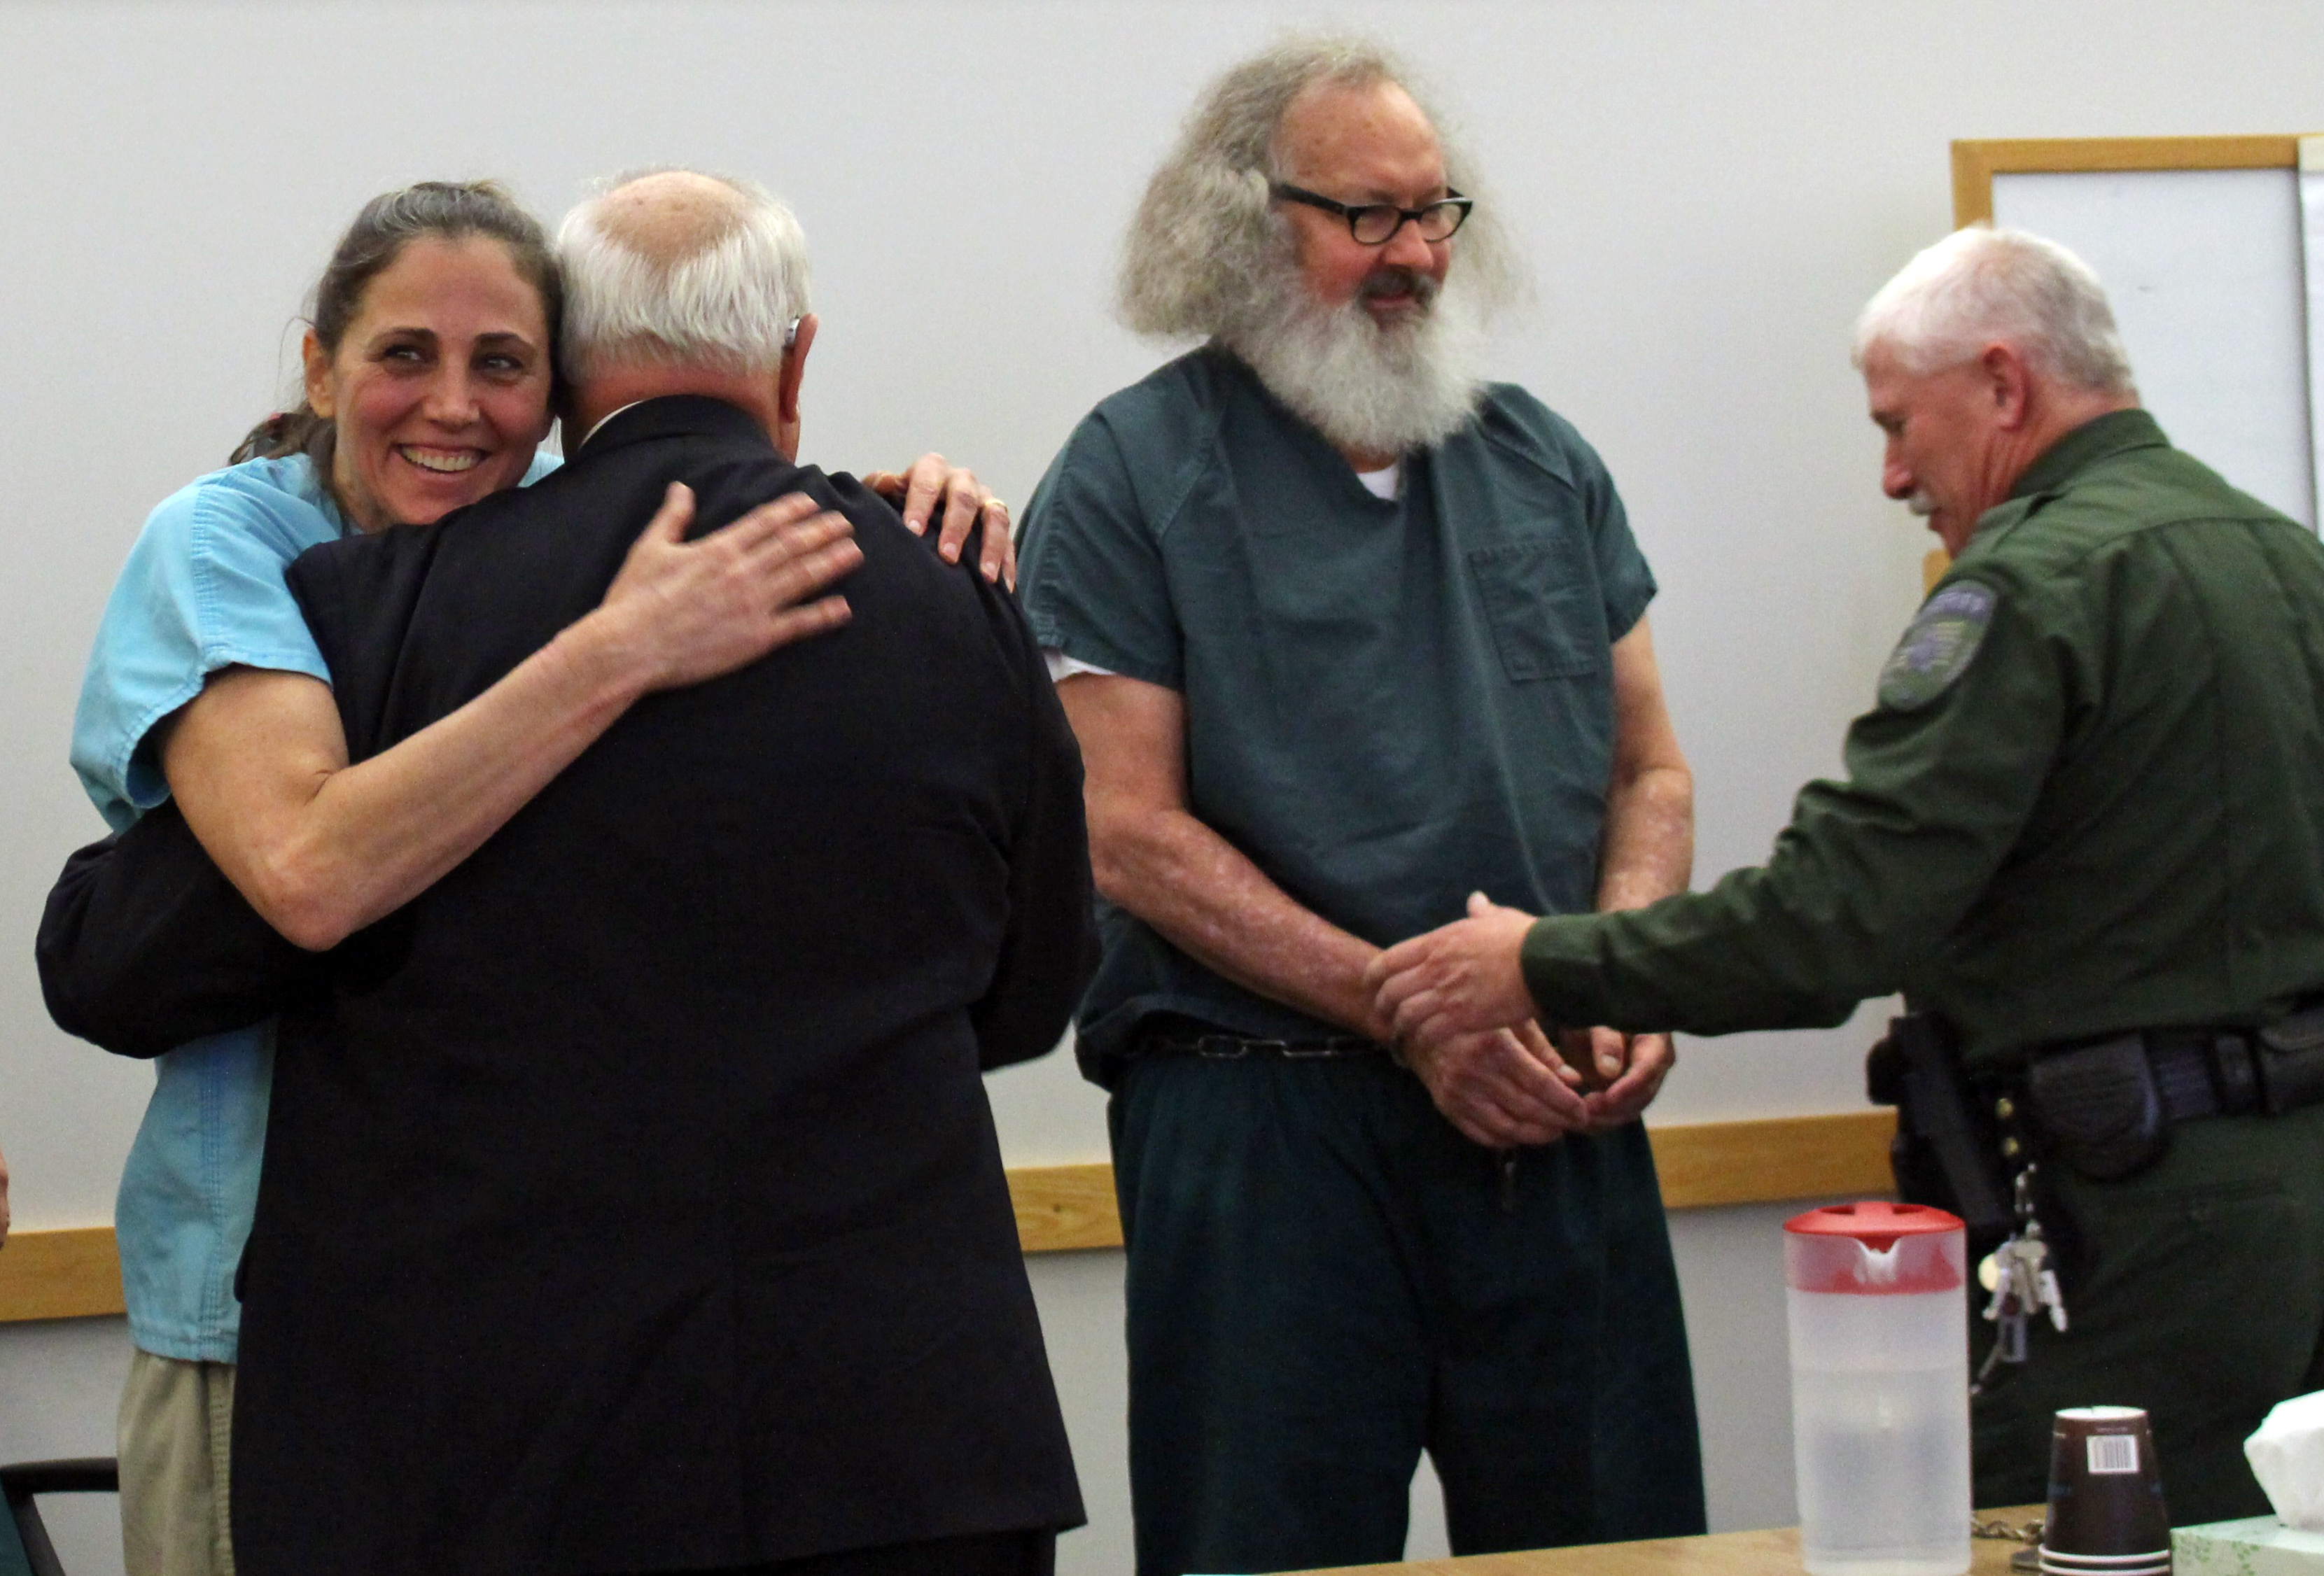 Evi Quaid, left, hugs attorney Peter Langrock and she and her husband, actor Randy Quaid, have their handcuffs removed in court Thursday, Oct. 15, 2015, in St. Albans, Vt. A Vermont judge released the couple, who says they'll now address 5-year-old criminal charges in California.  (Elodie Reed/St. Albans Messenger via AP, Pool)